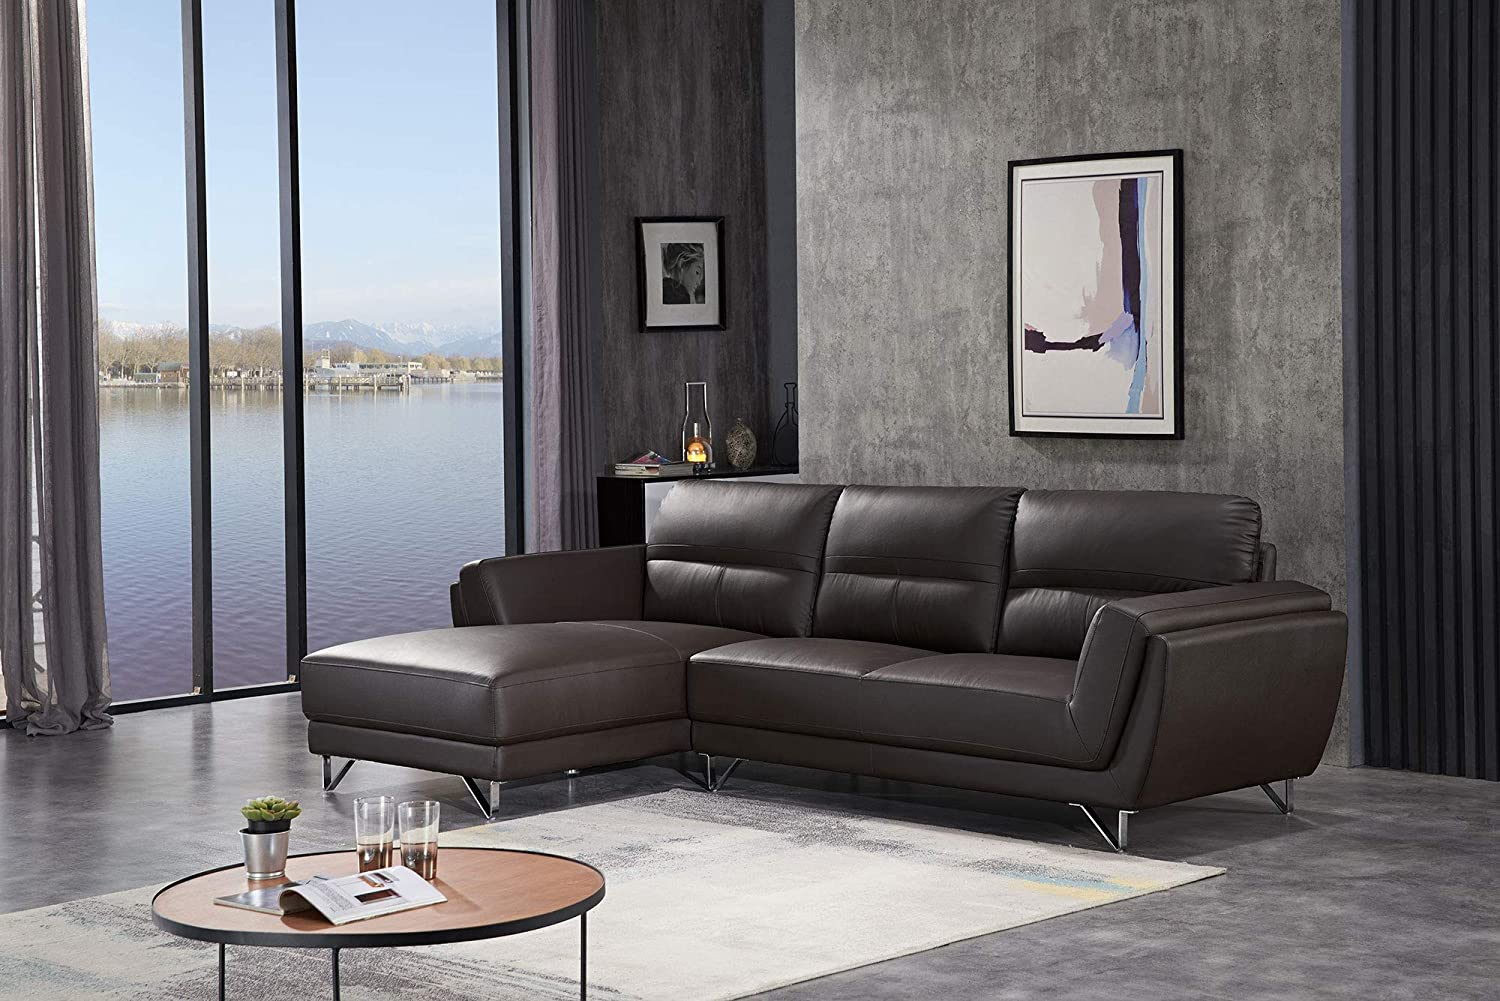 FUNRELAX Sectional Sofa Set L Shaped Comfortable Leather Corner Reclining Couches and Sofas for Living Room Modern Left Chaise Sectional Home Furniture,Coffee Color